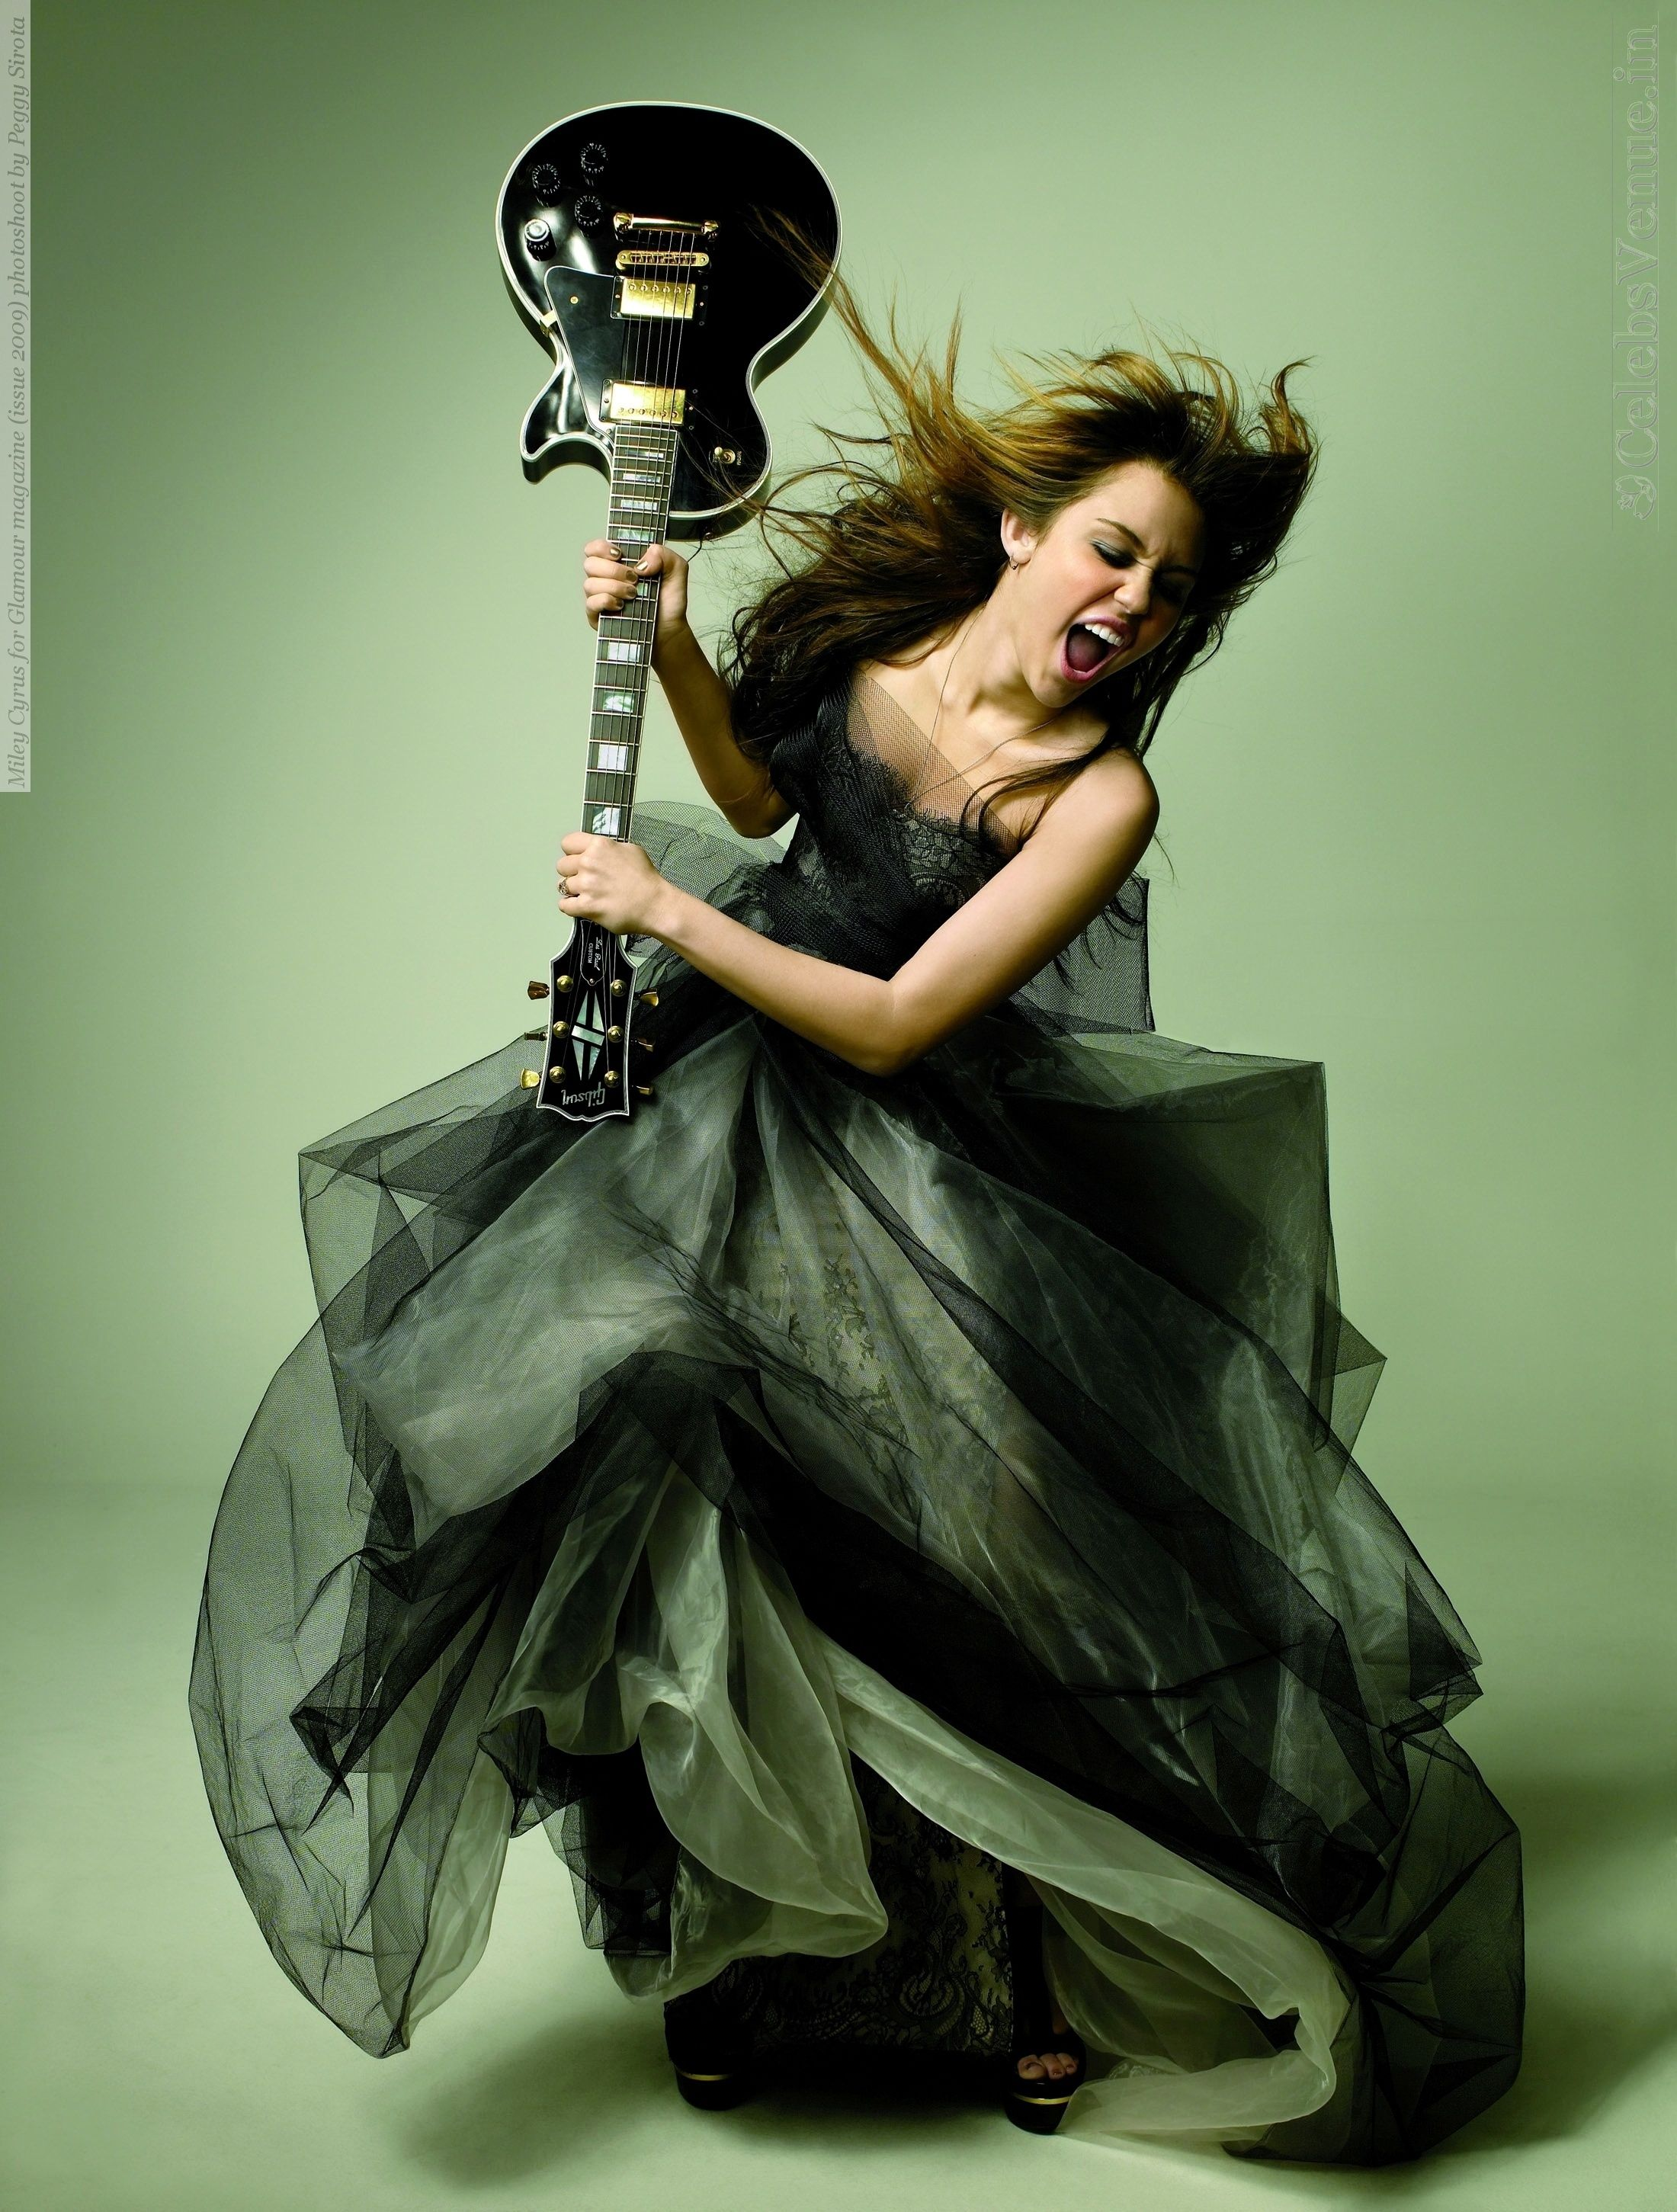 miley-cyrus-for-glamour-magazine-issue-2009-photoshoot-by-peggy-sirota-140.jpg